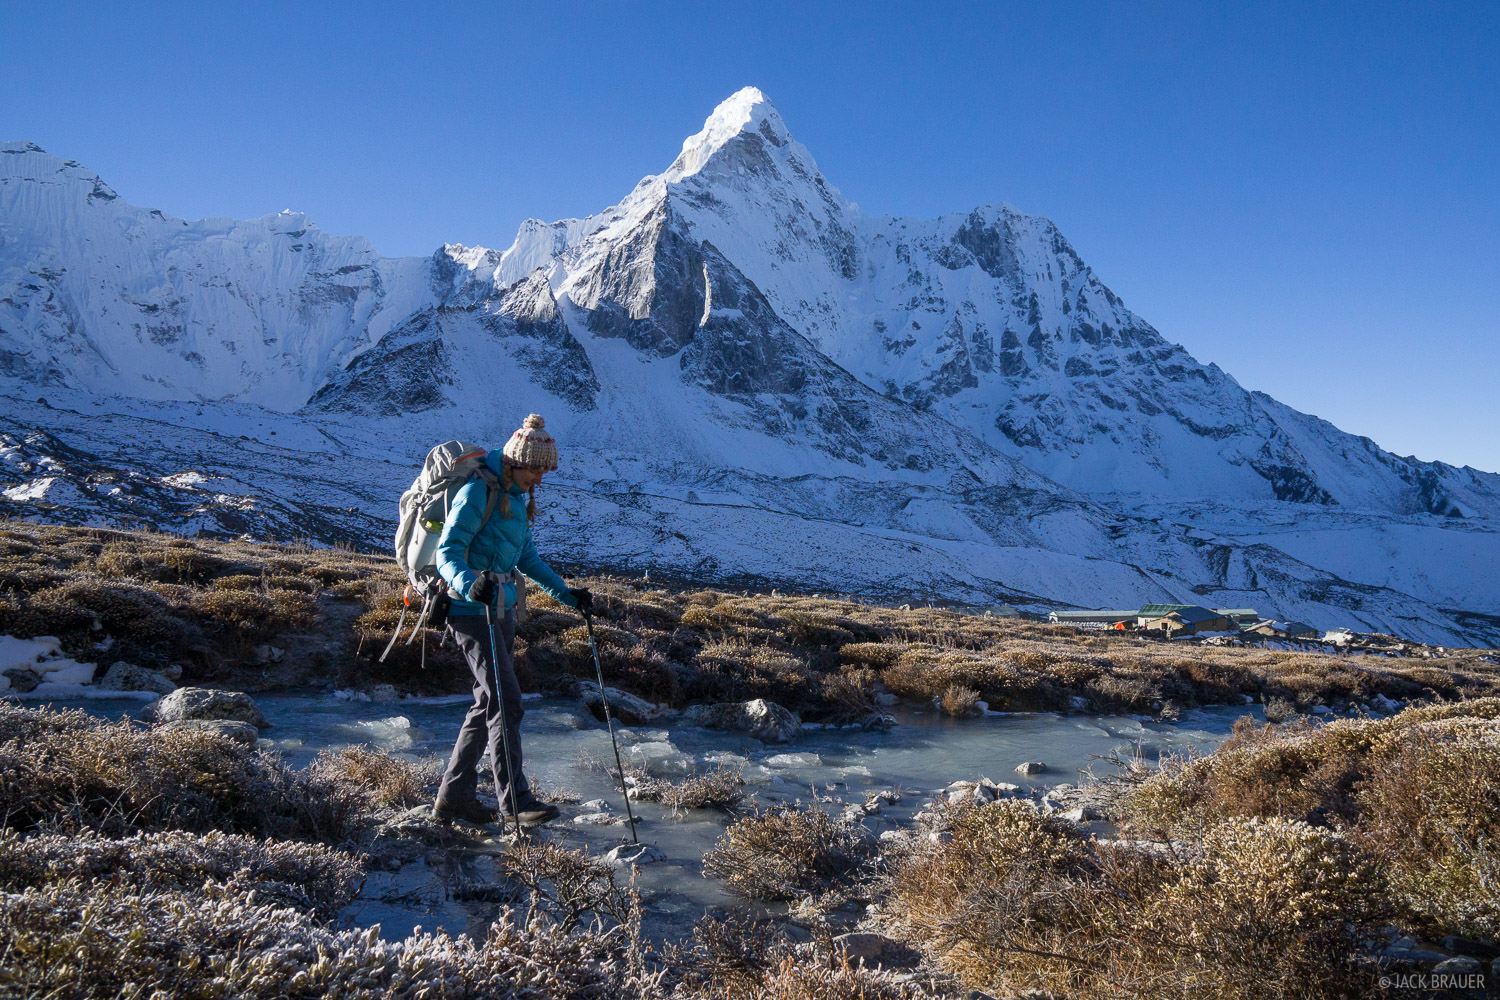 Ama Dablam,Asia,Chukhung,Himalaya,Khumbu,Nepal, hiking, photo